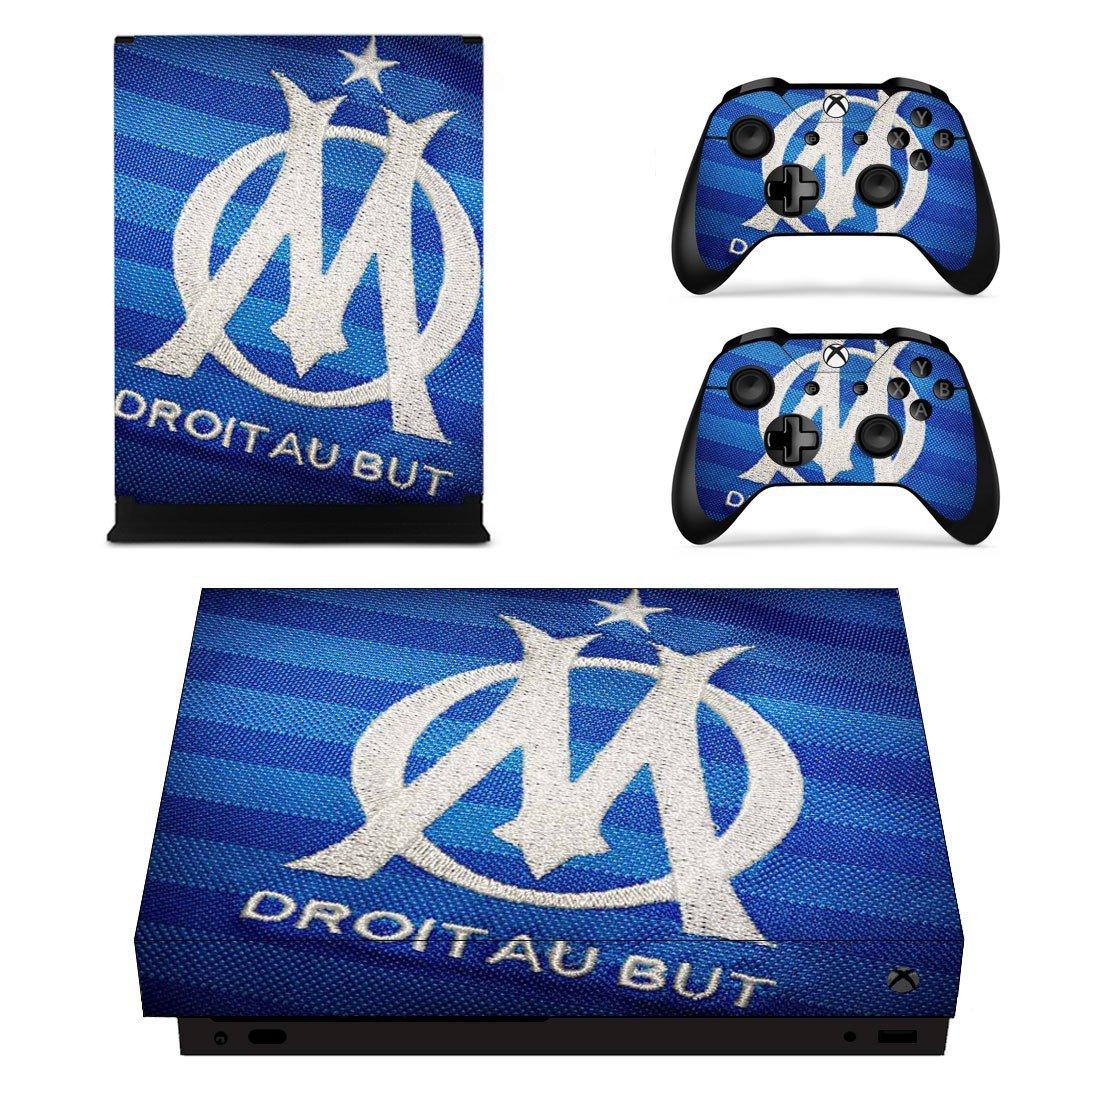 Olympique de Marseille decal skin sticker for Xbox One X console and controllers